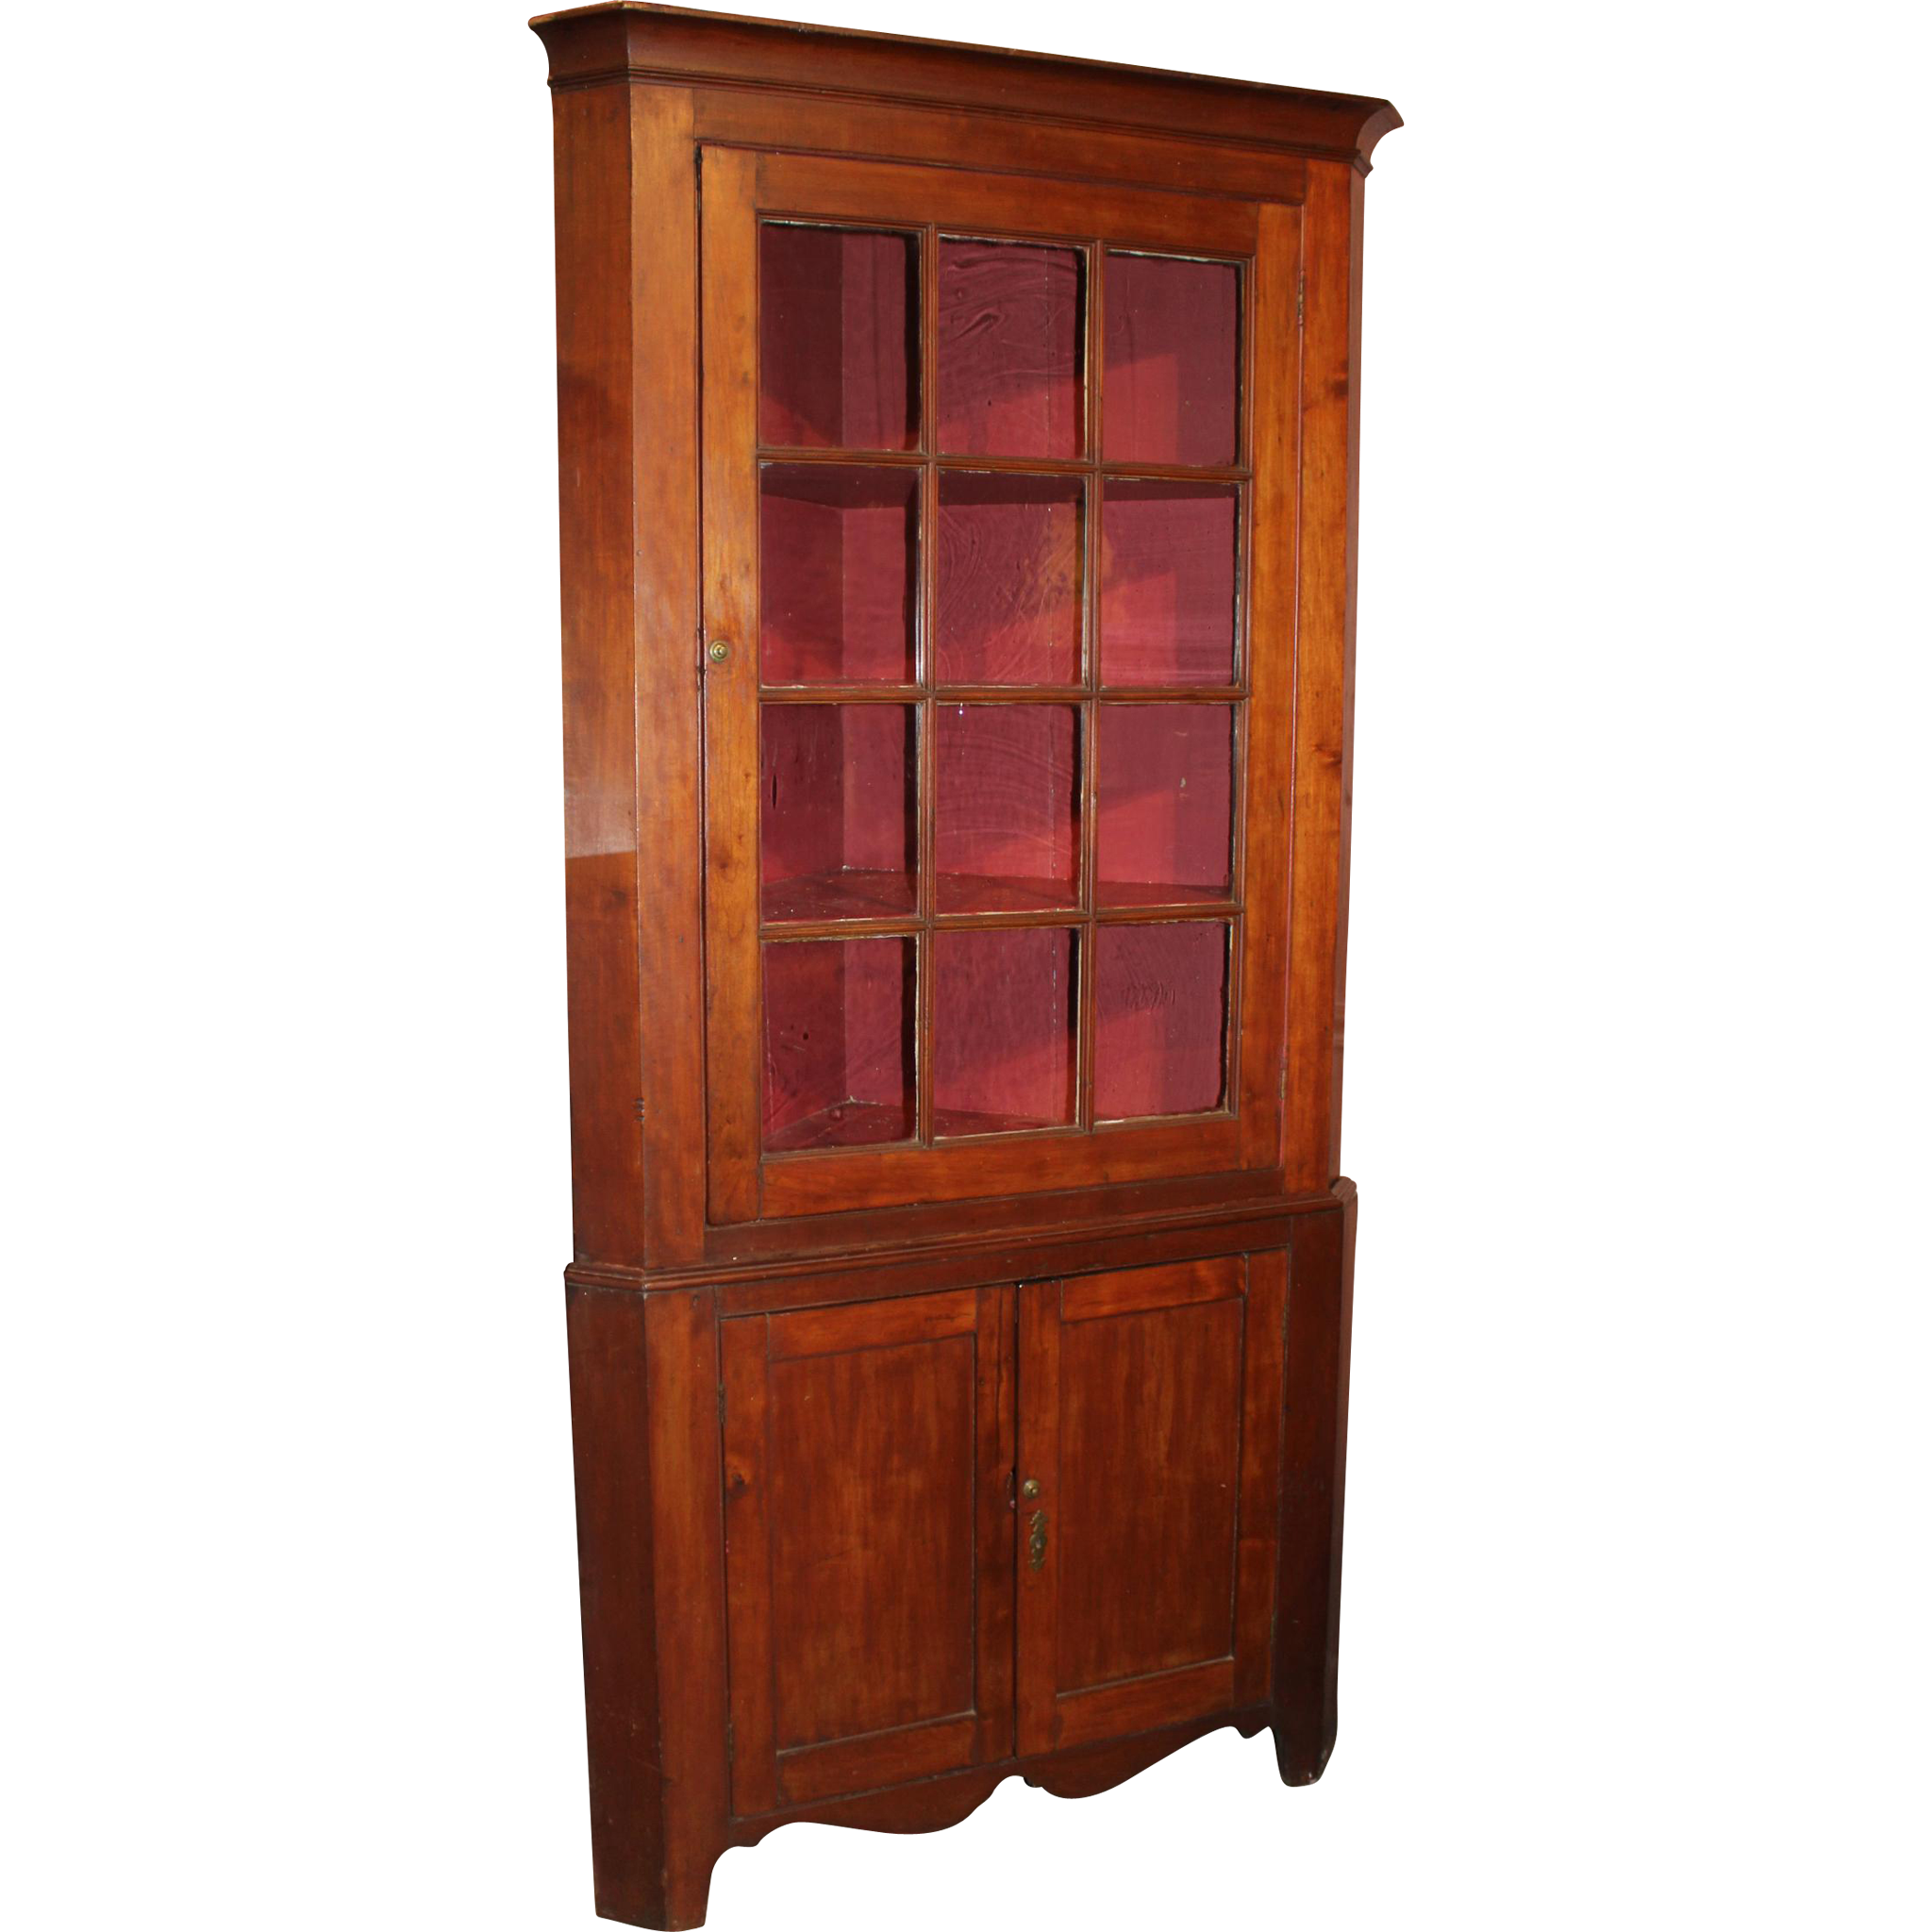 Federal Period Cherry Corner Cupboard with Glazed Door, circa 1820